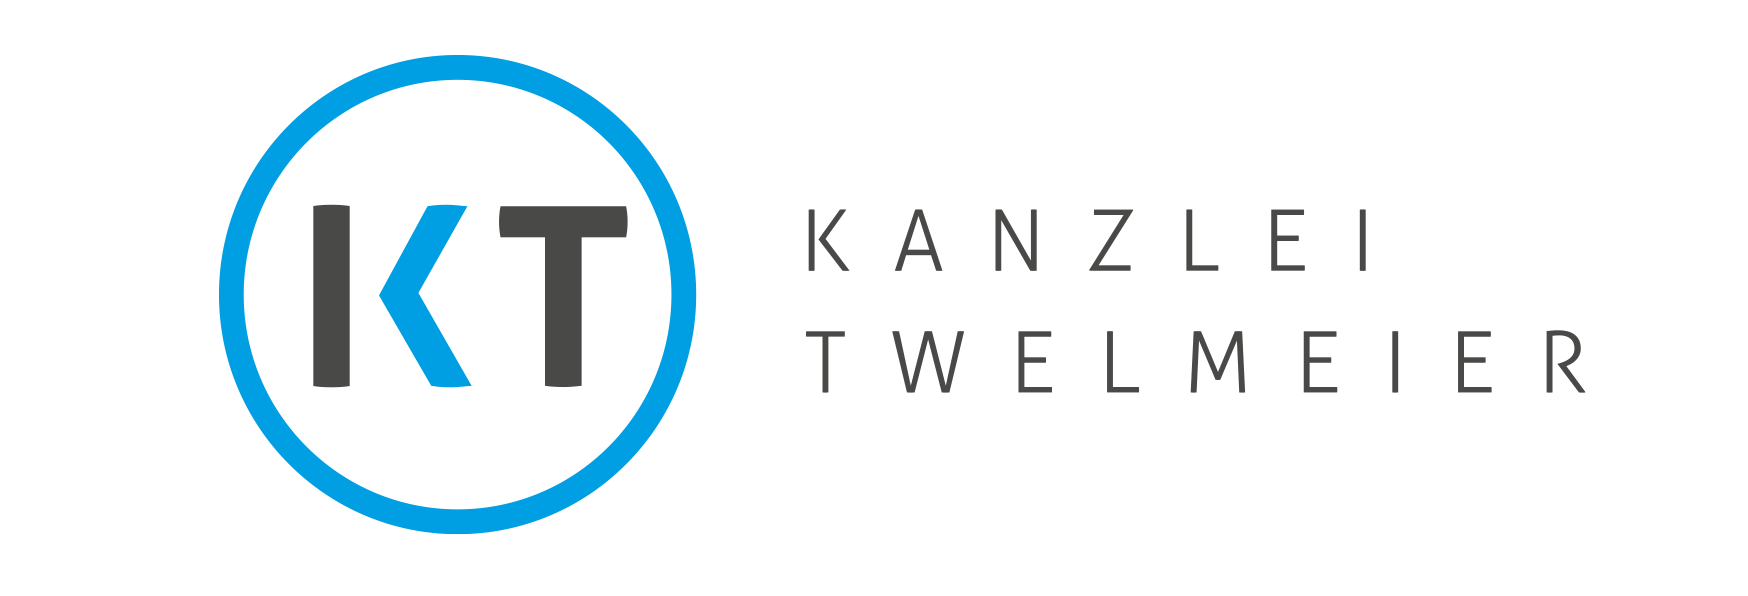 IT-Kanzlei Twelmeier